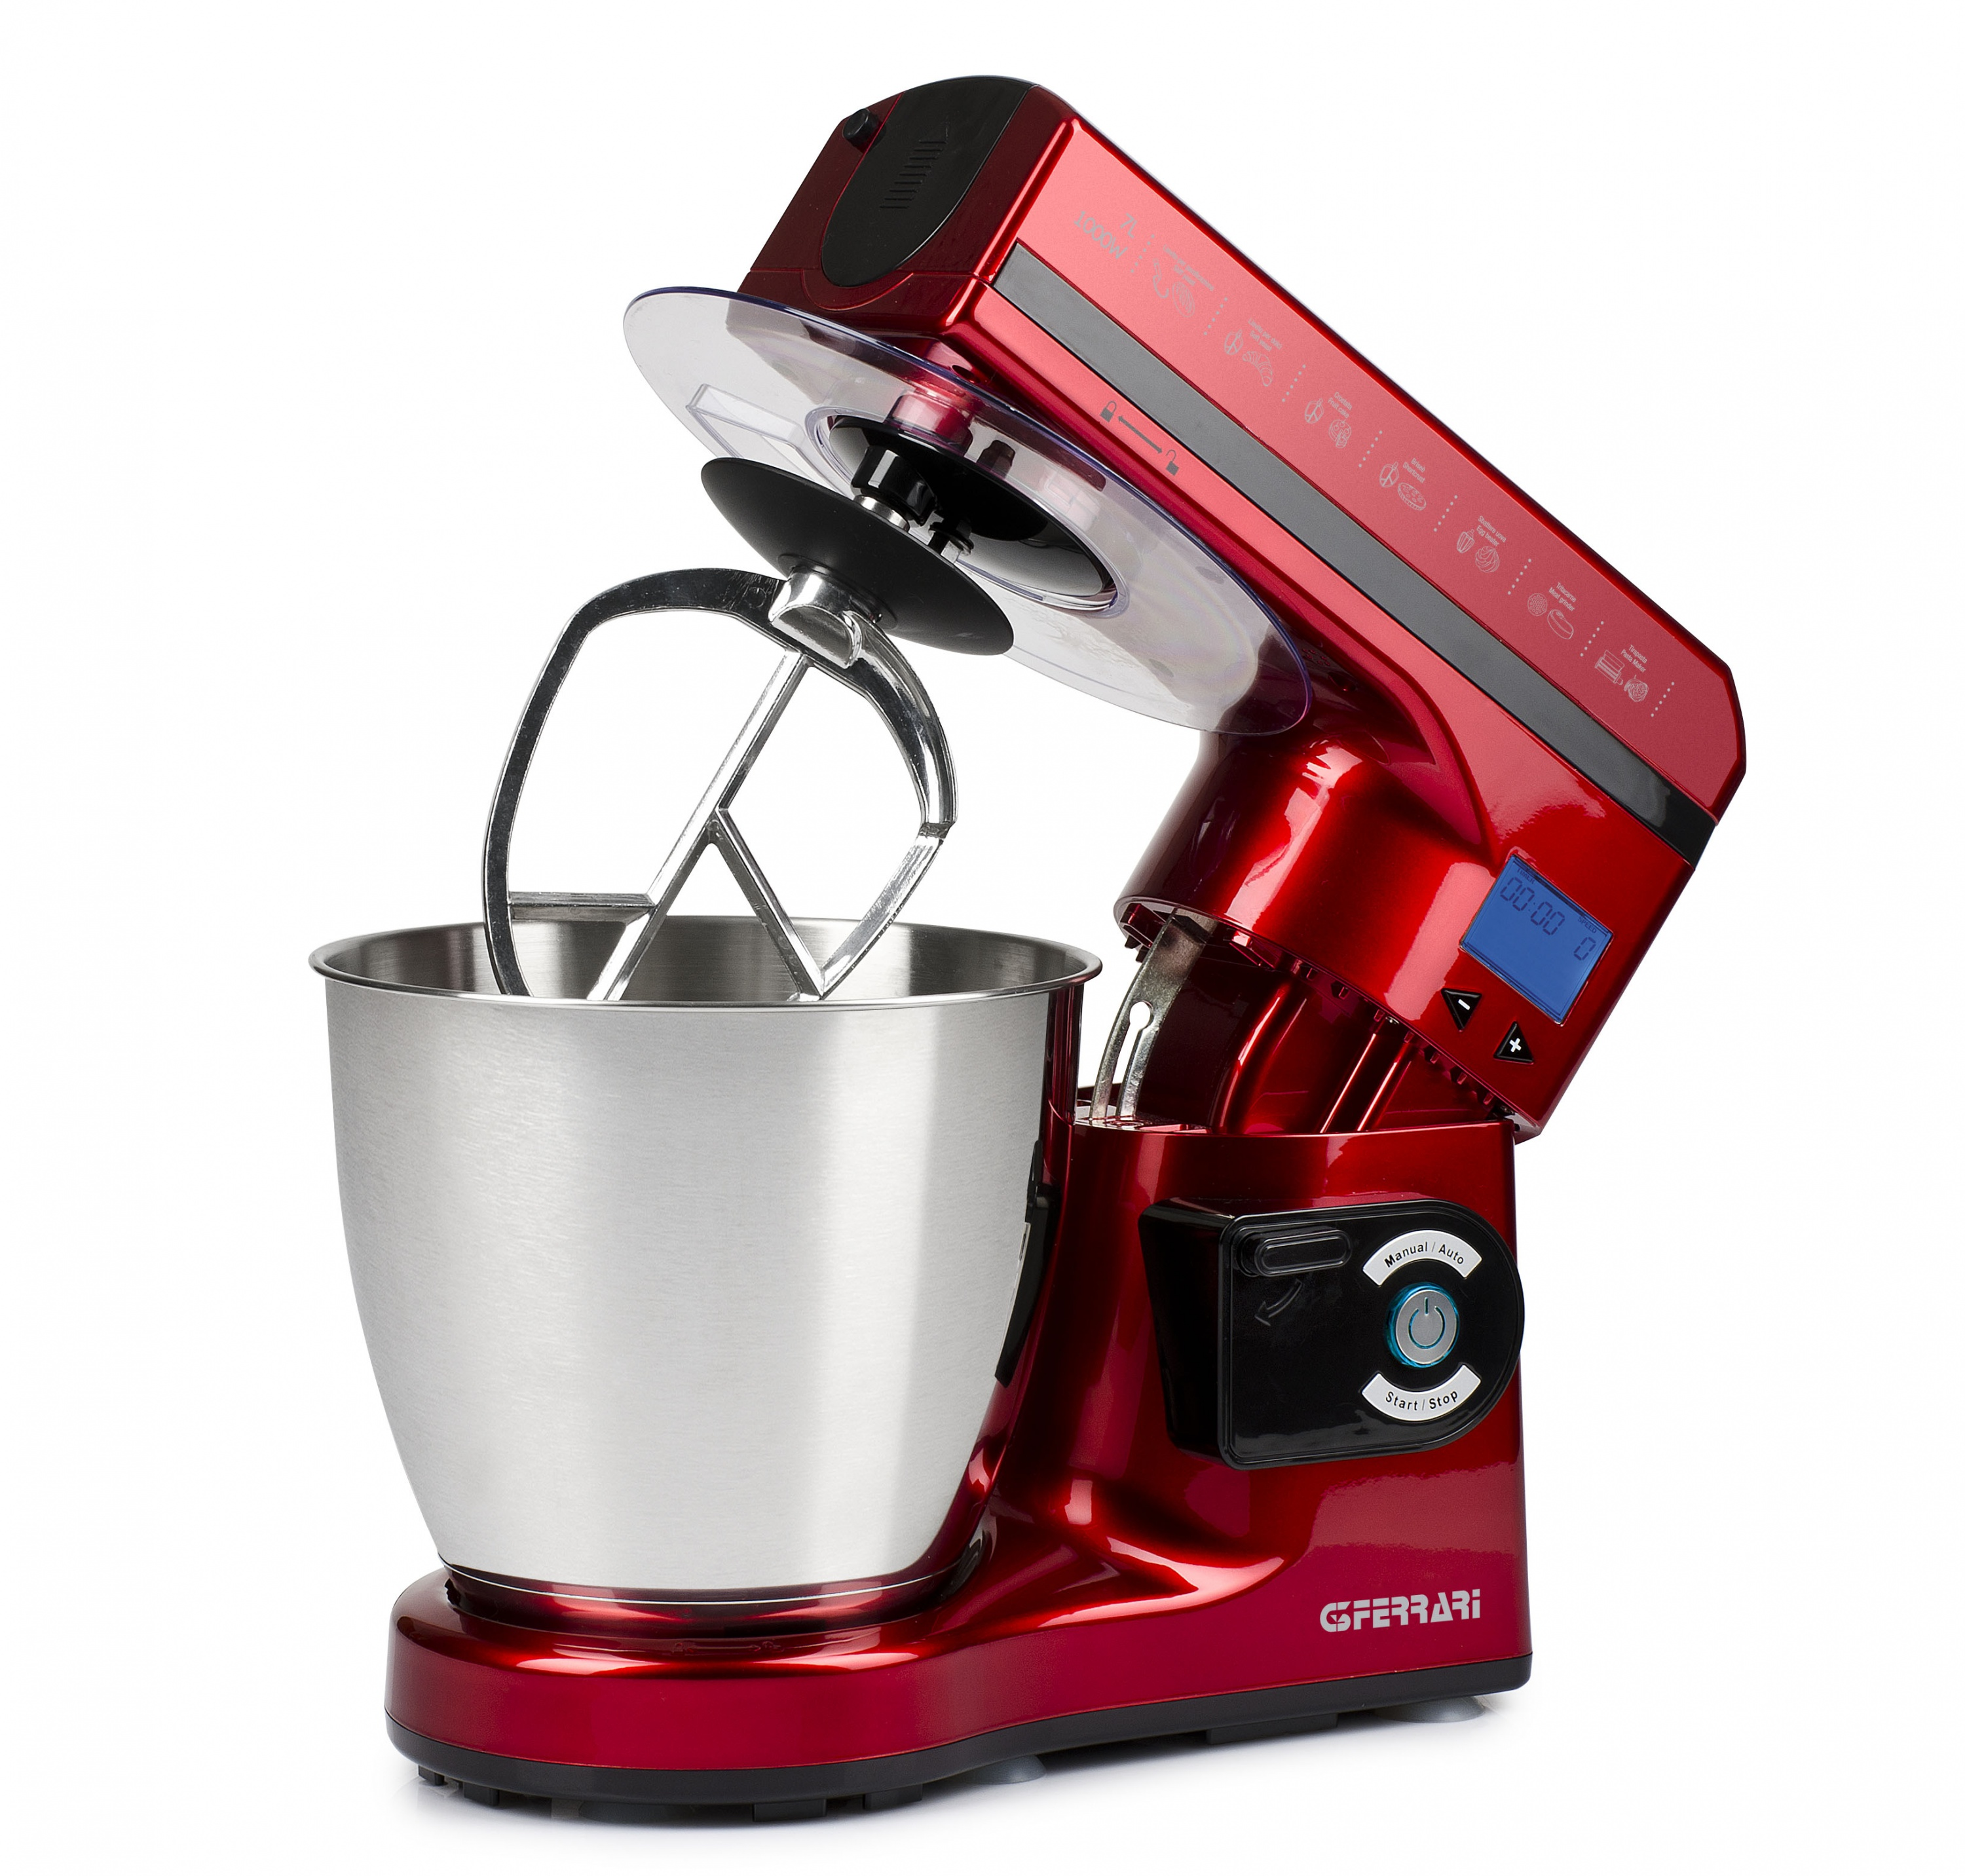 Pastaio | Professional stand mixers | Food preparation | G3Ferrari